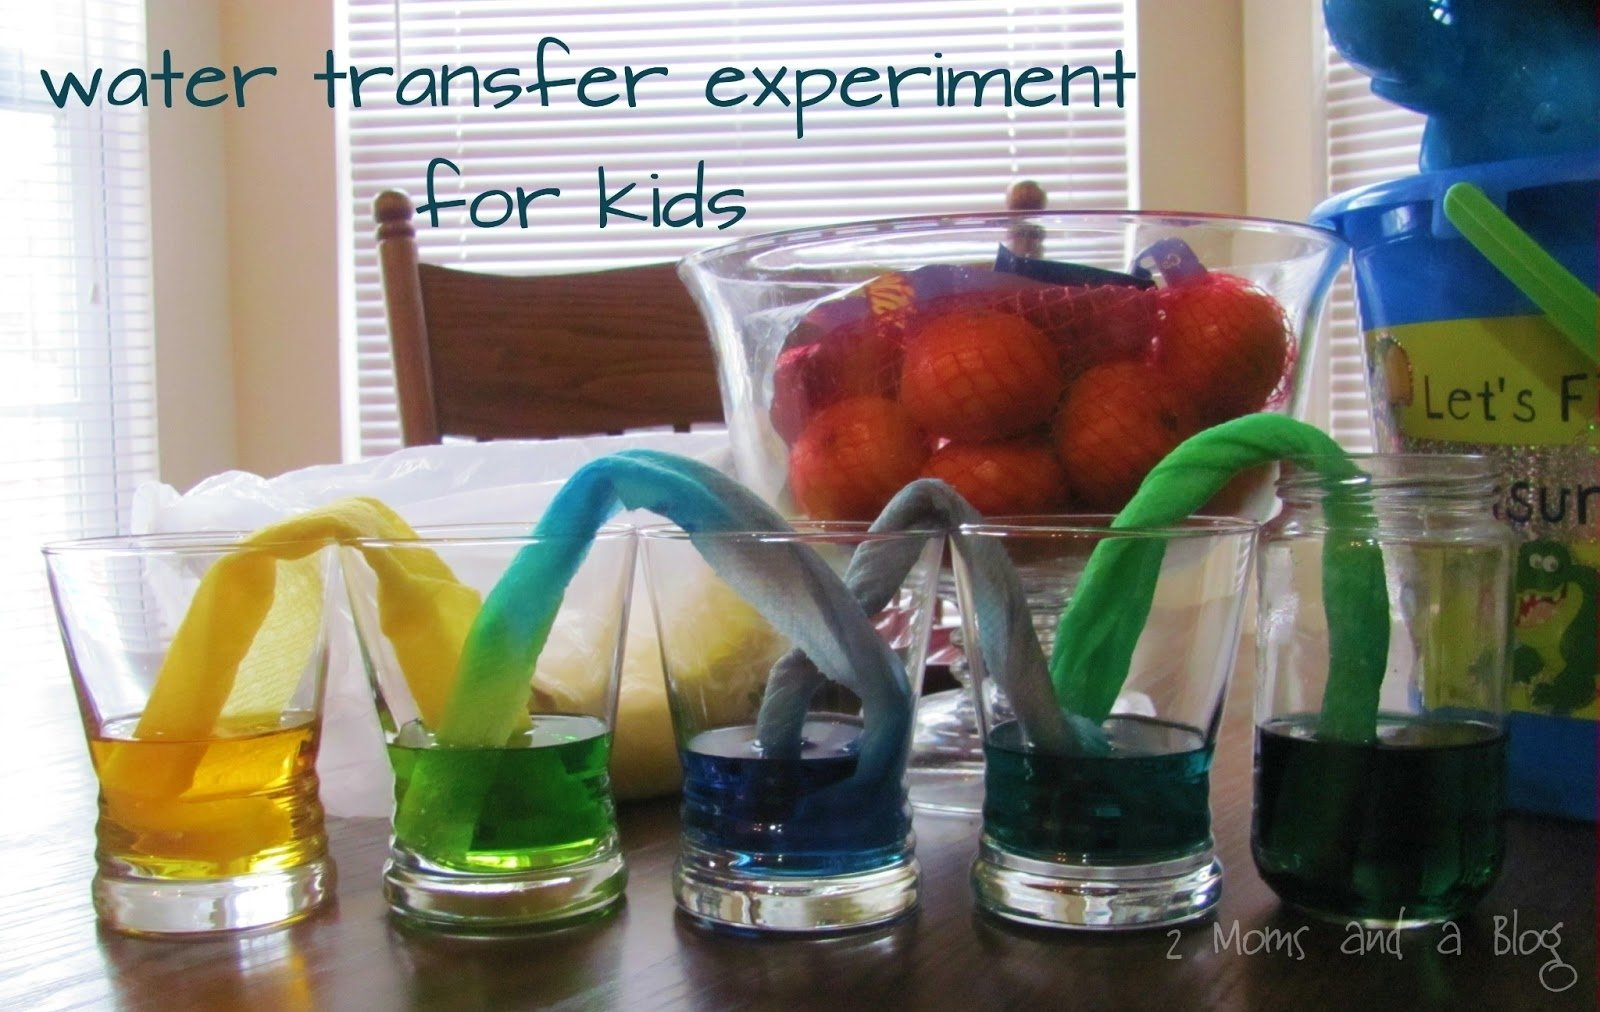 10 Attractive Science Fair Project Ideas With Food 2 moms and a blog paper towel water transfer science experiment for